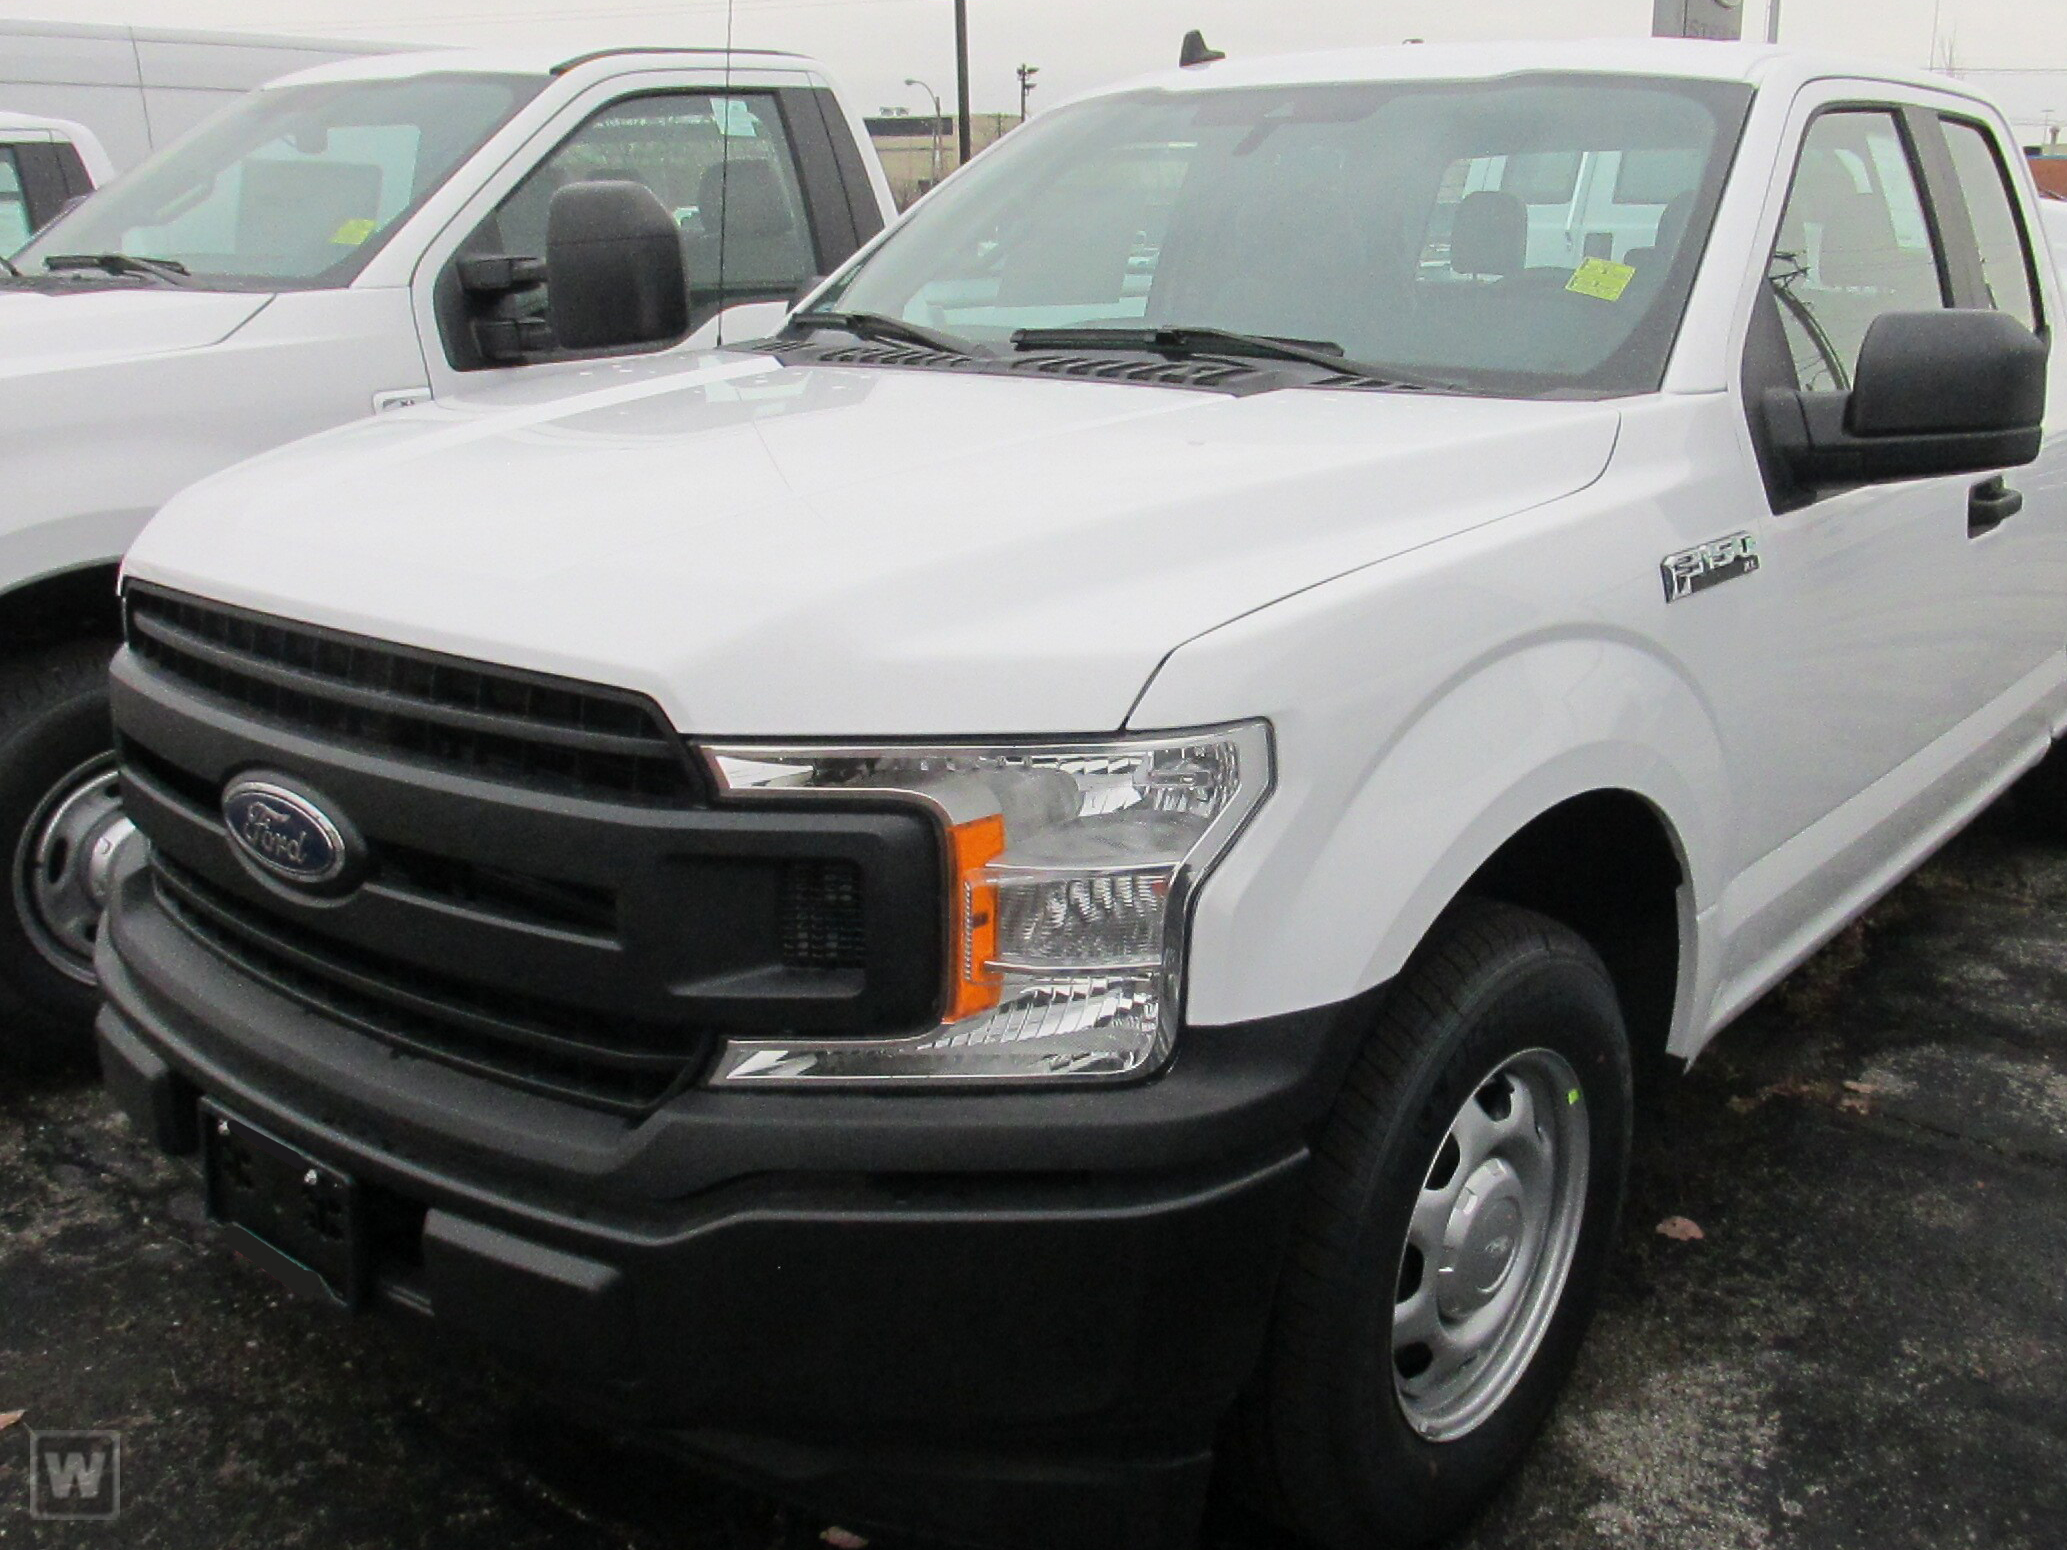 2020 F-150 Super Cab 4x4, Pickup #N8982 - photo 1